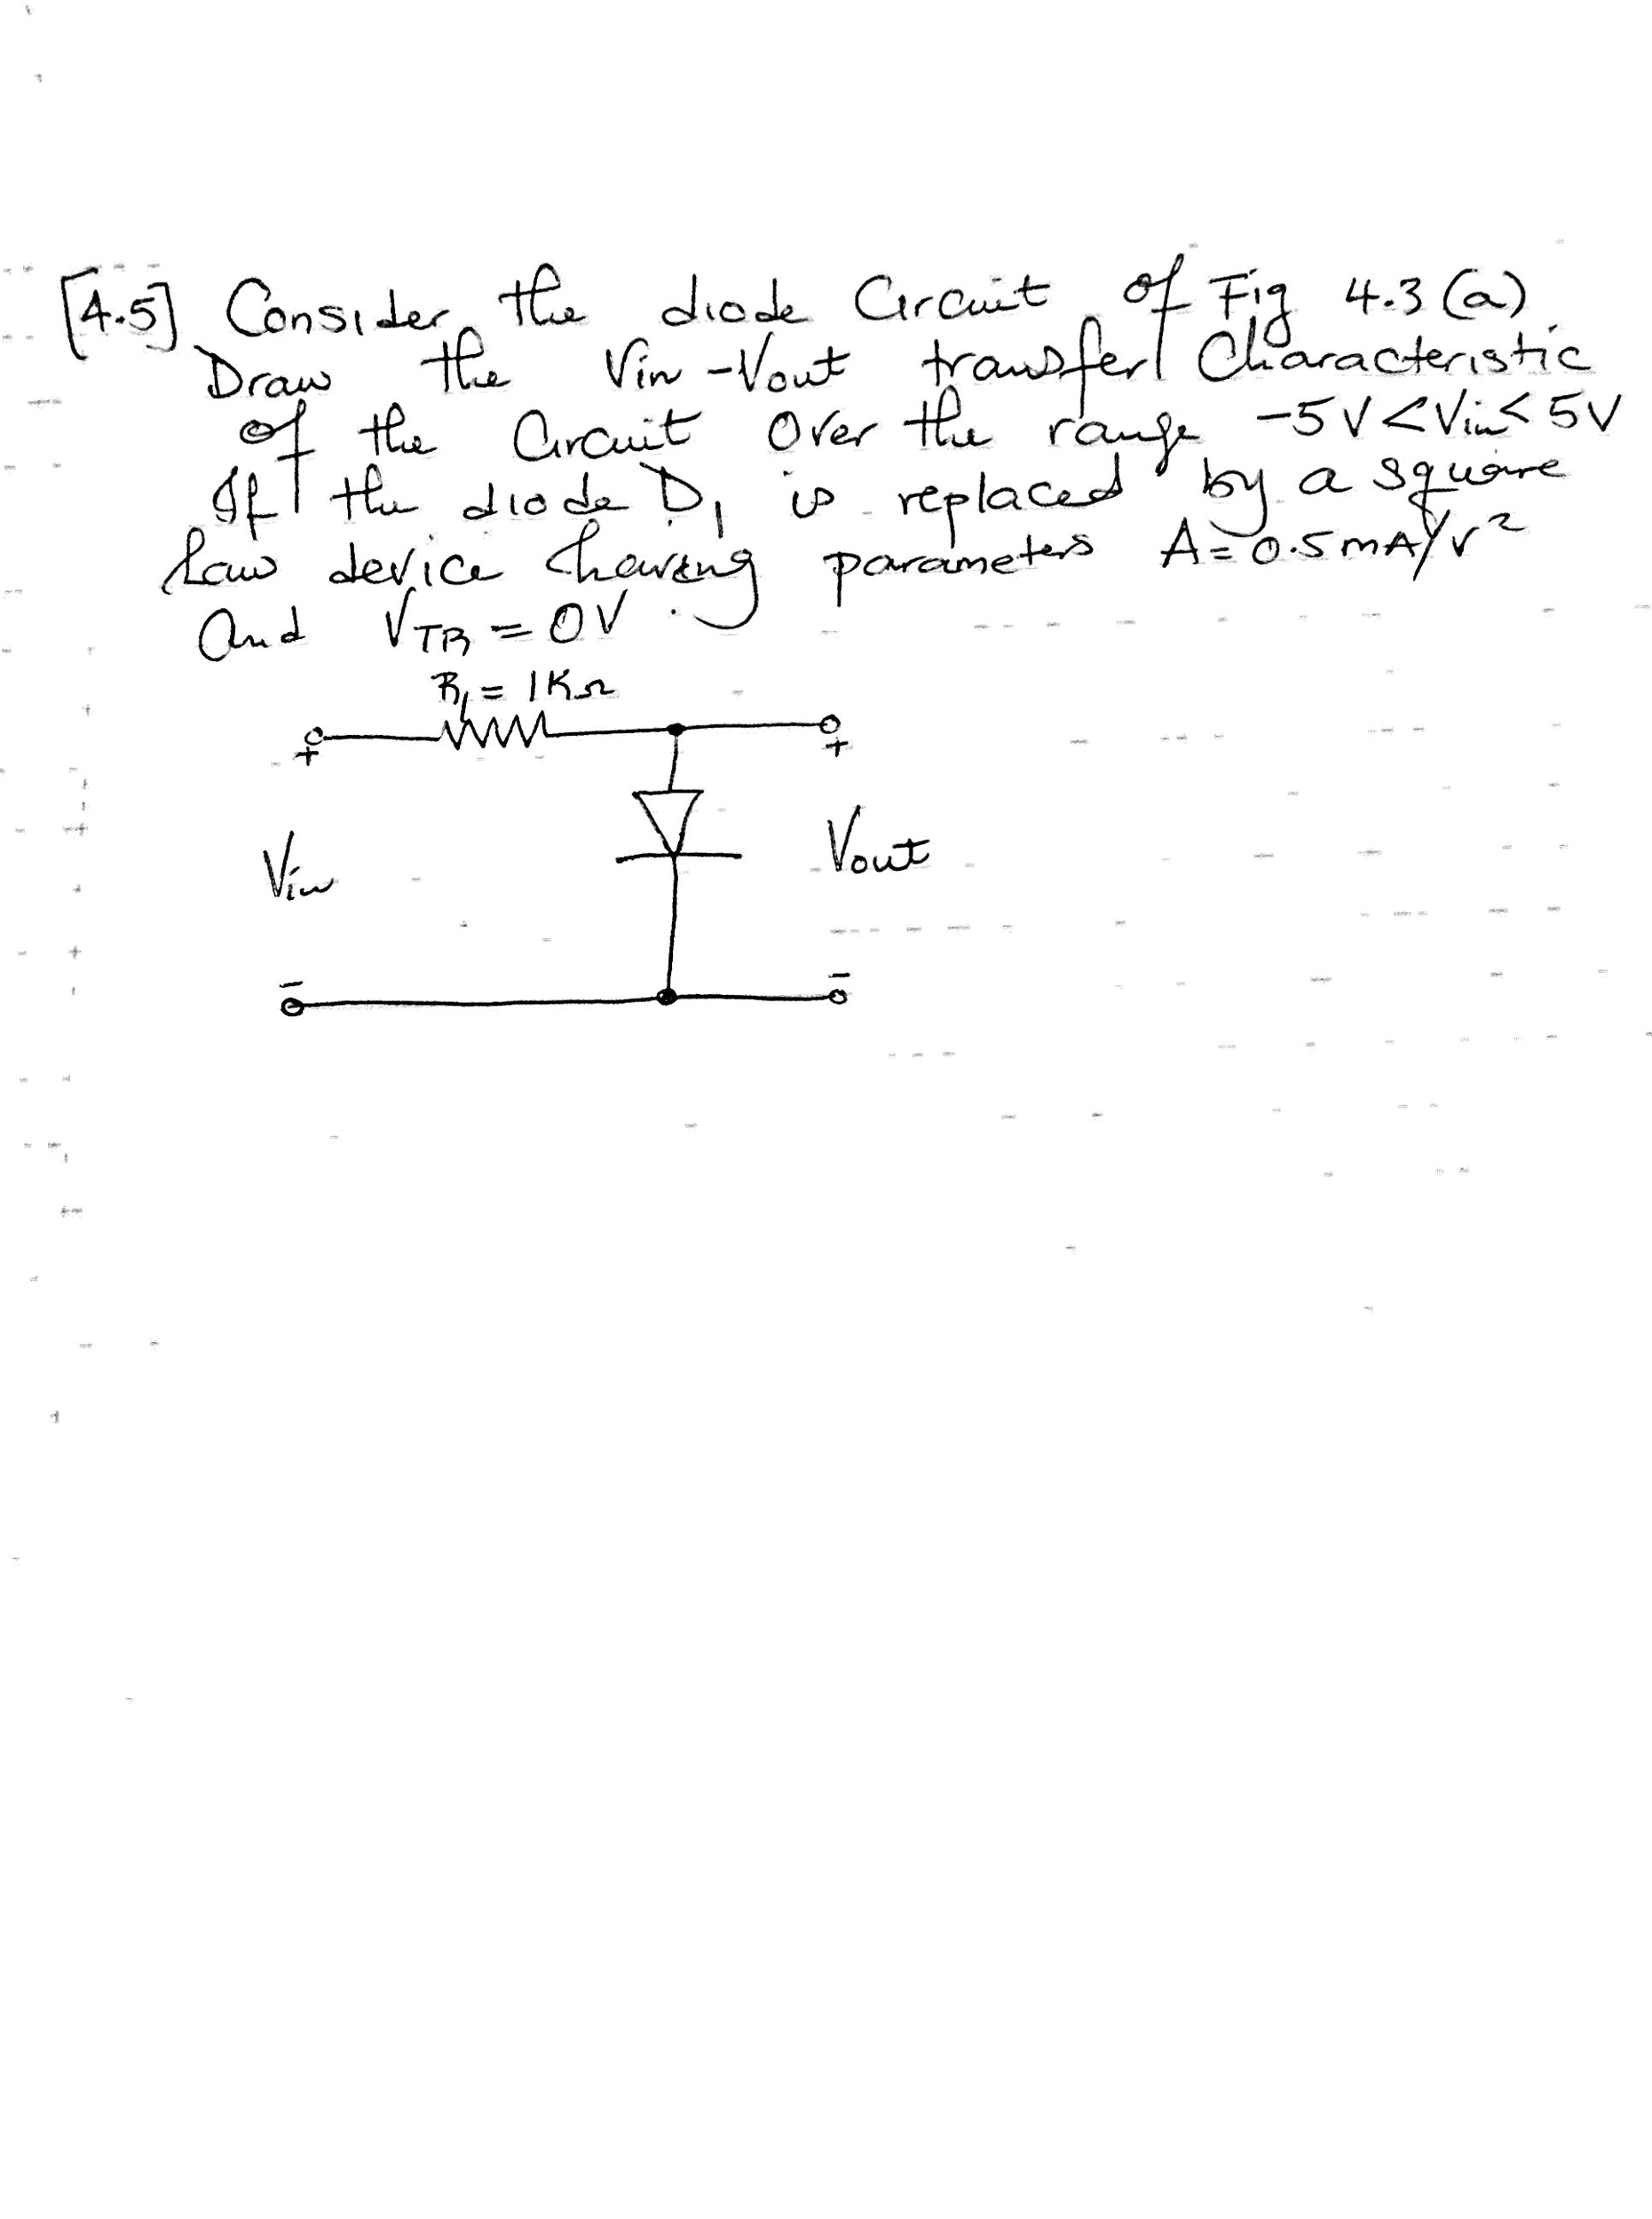 Consider the diode circuit of the figure 4.3(a).Dr